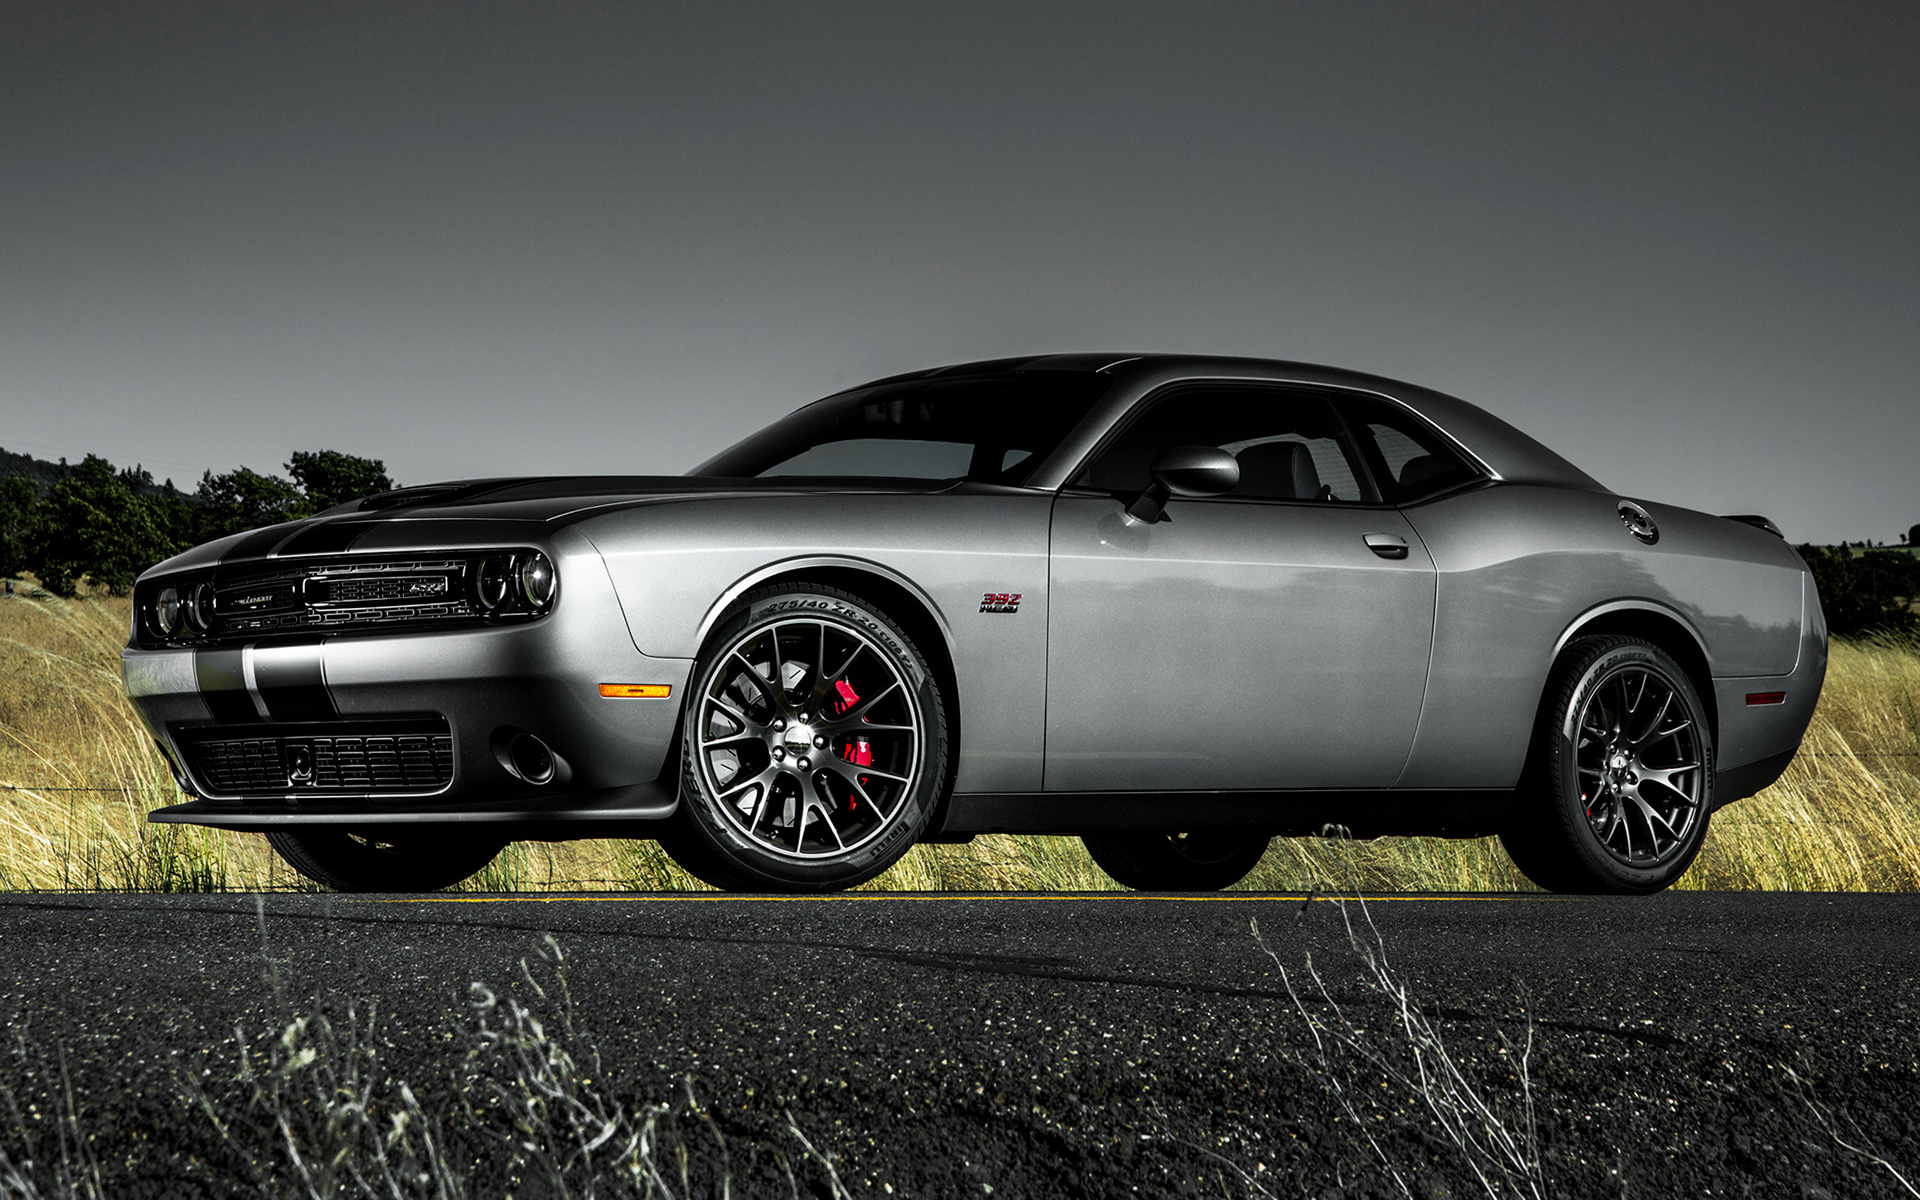 Dodge Challenger SRT 392 2015 Wallpapers and HD Images 1920x1200